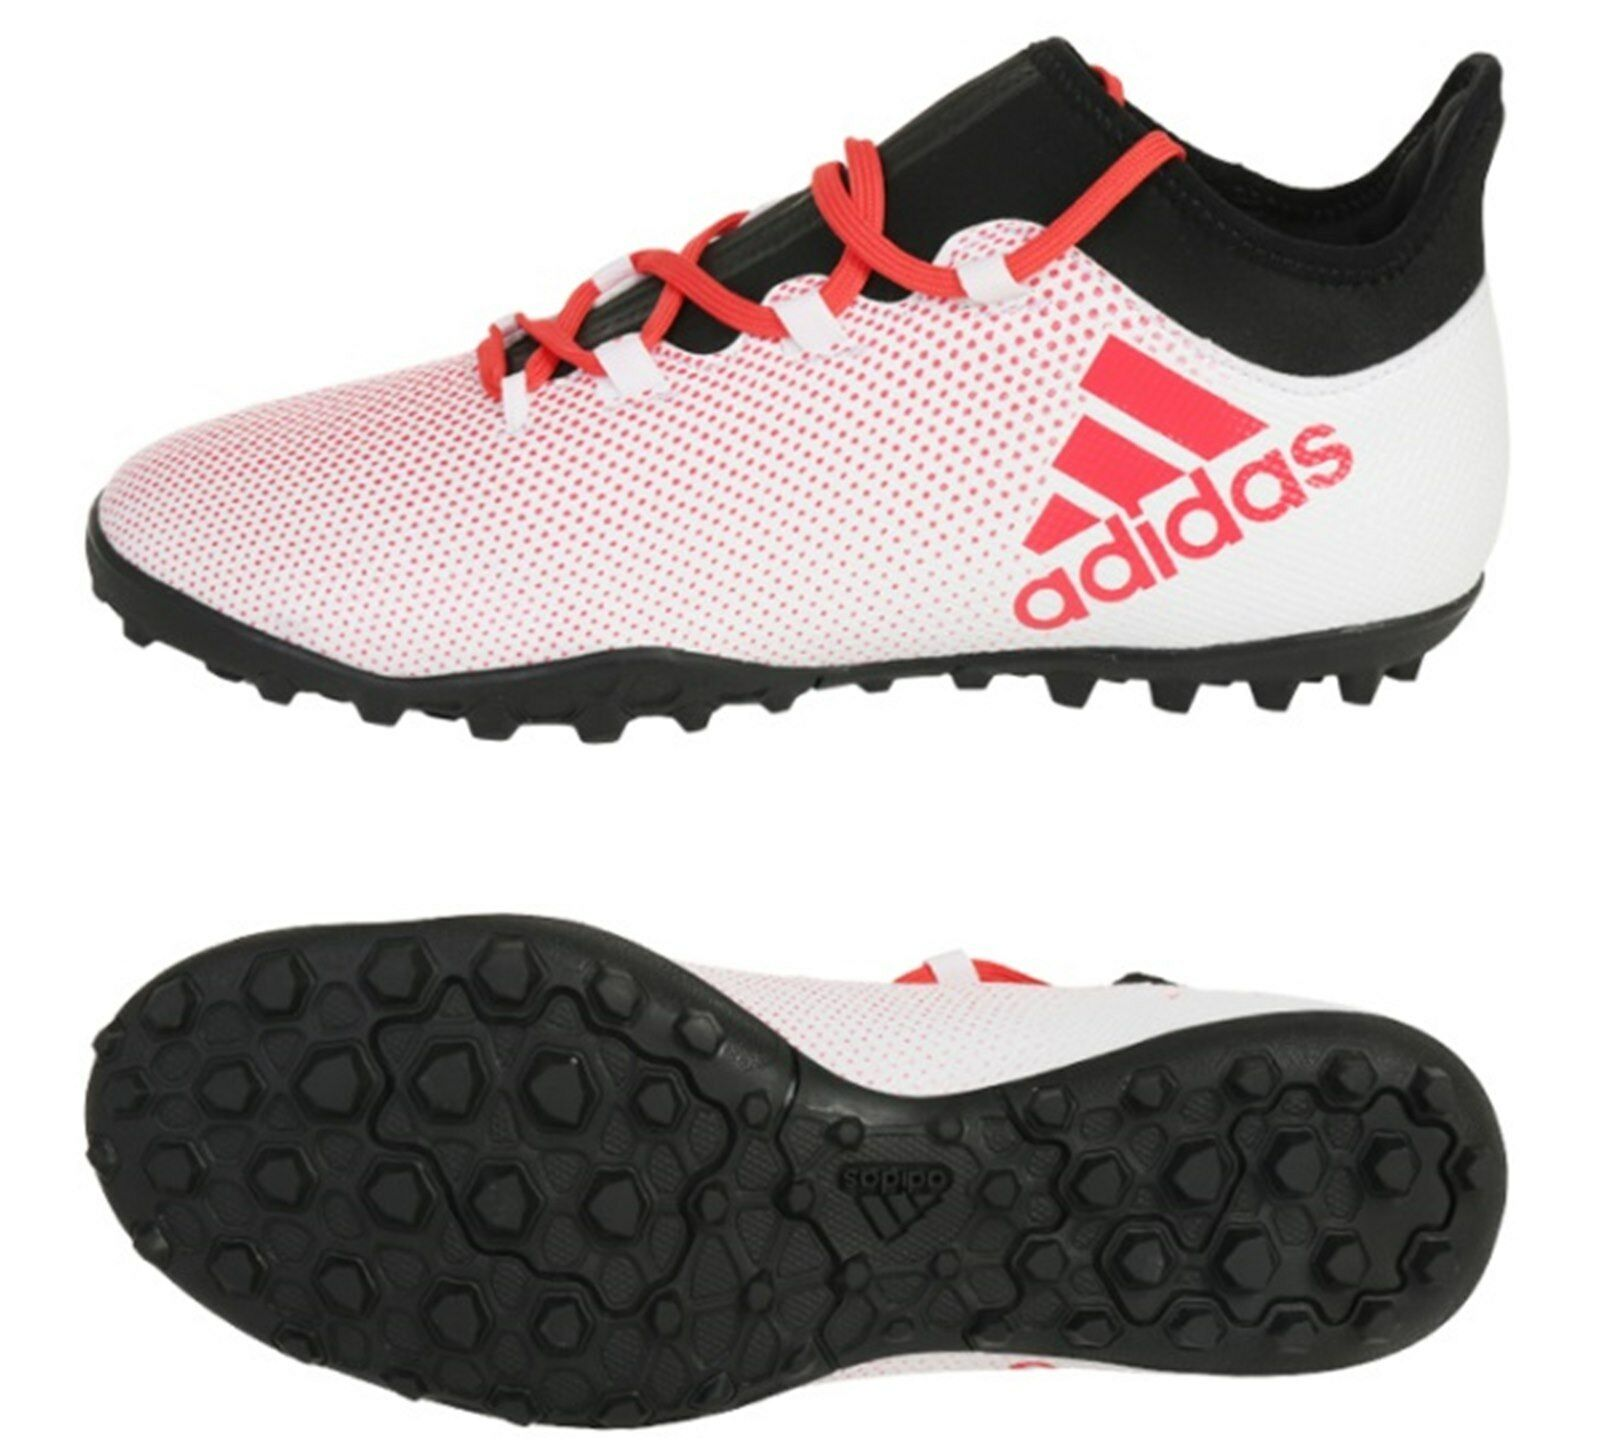 Adidas Men Techfit X Tango 17.3 TF Cleats Futsal Weiß schuhe Soccer Spike CP9136